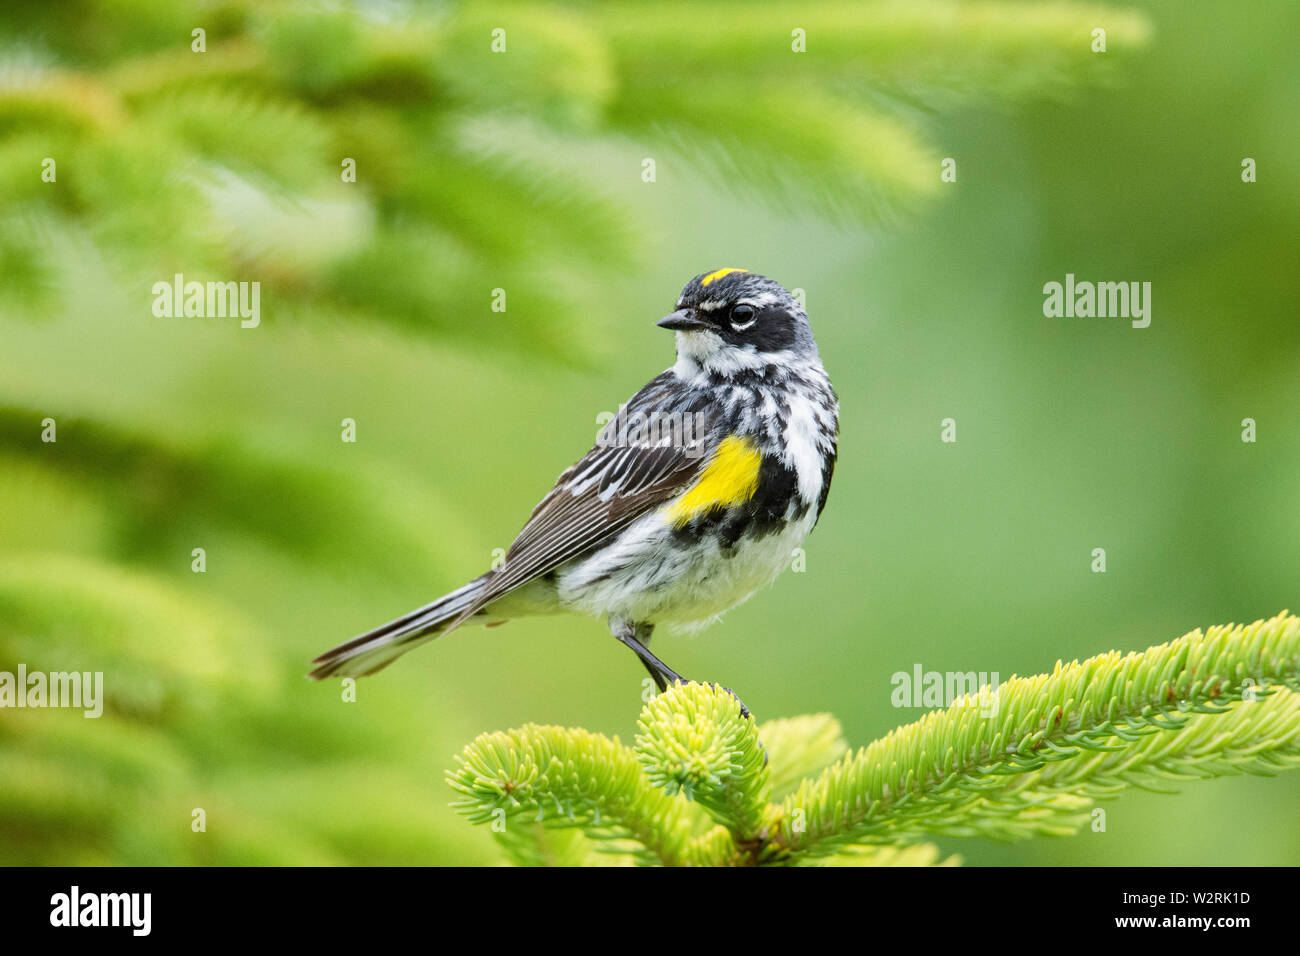 yellow-rumped warbler, Setophaga coronata, male on tree in spring, Nova Scotia, Canada Stock Photo